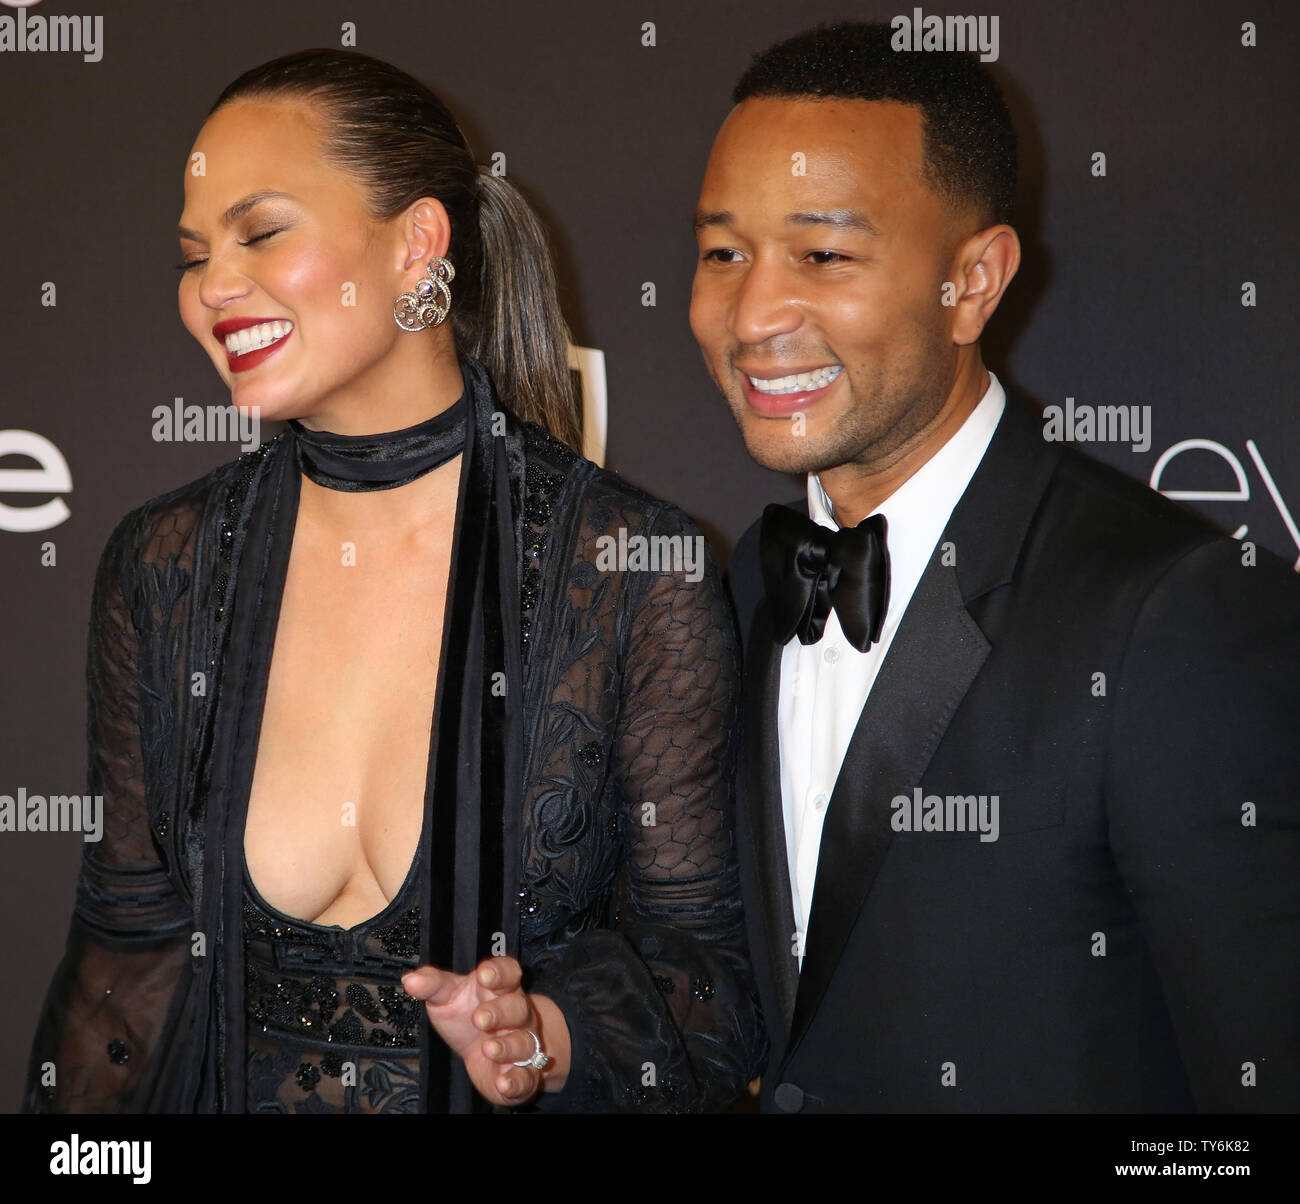 Chrissy Teigen (L) and John Legend attend the 18th annual InStyle and Warner Bros. Golden Globe after-party at the Beverly Hilton Hotel in Beverly Hills, California on January 8, 2017.  Photo by David Silpa/UPI - Stock Image